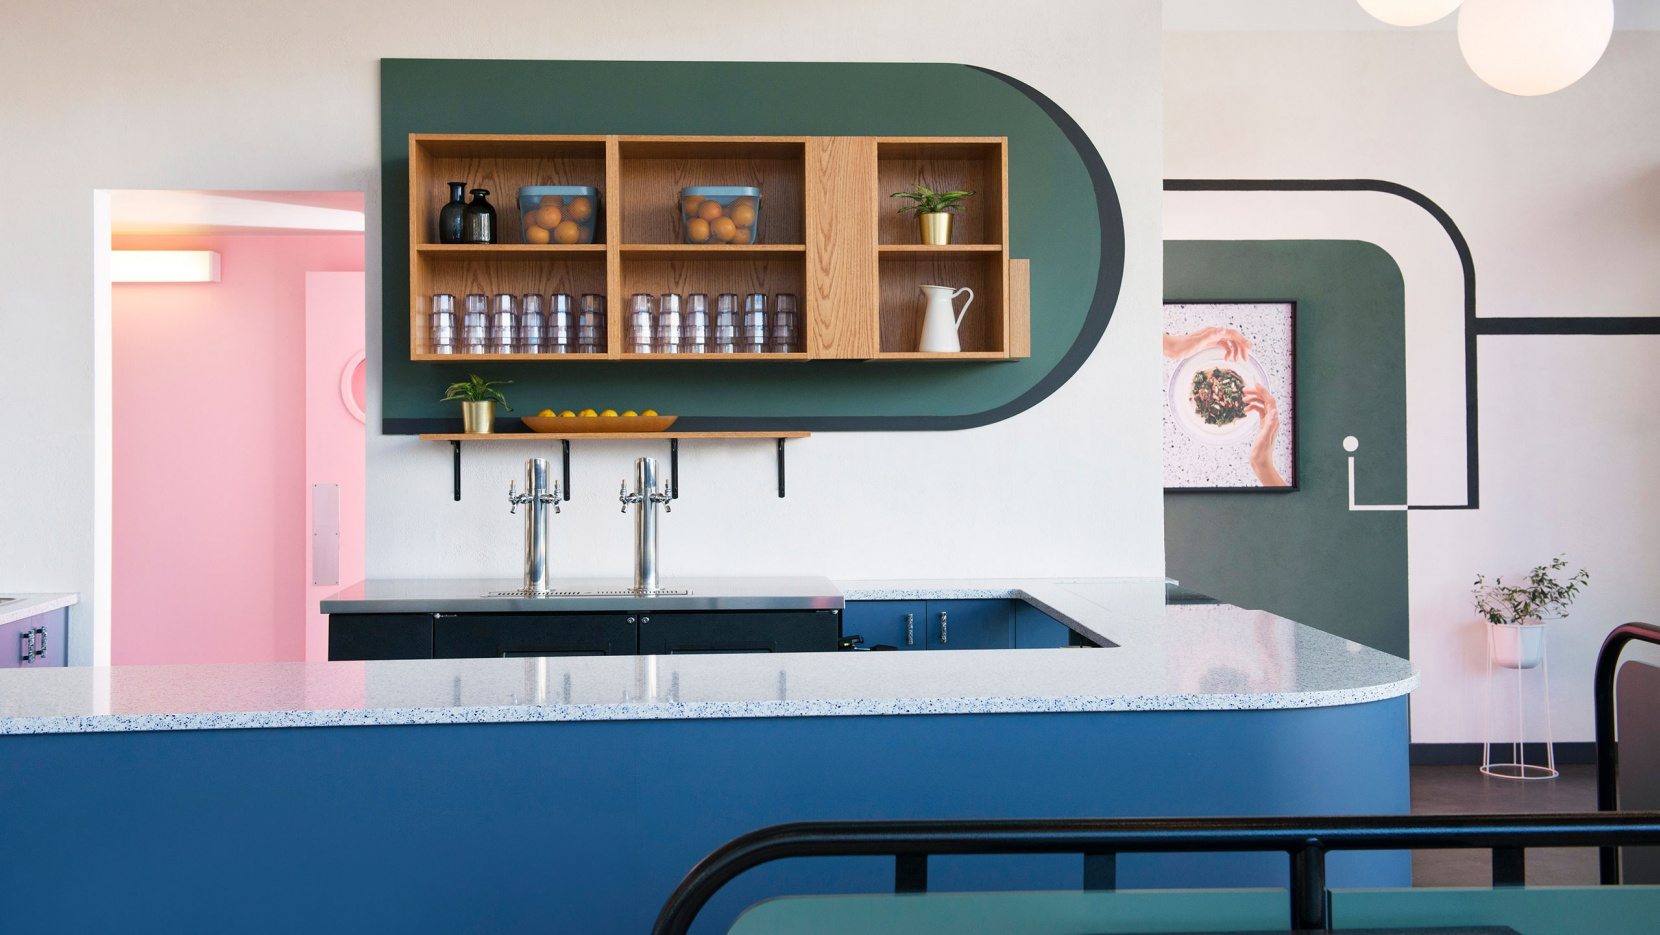 The quirky retro superbaba restaurant brings middle